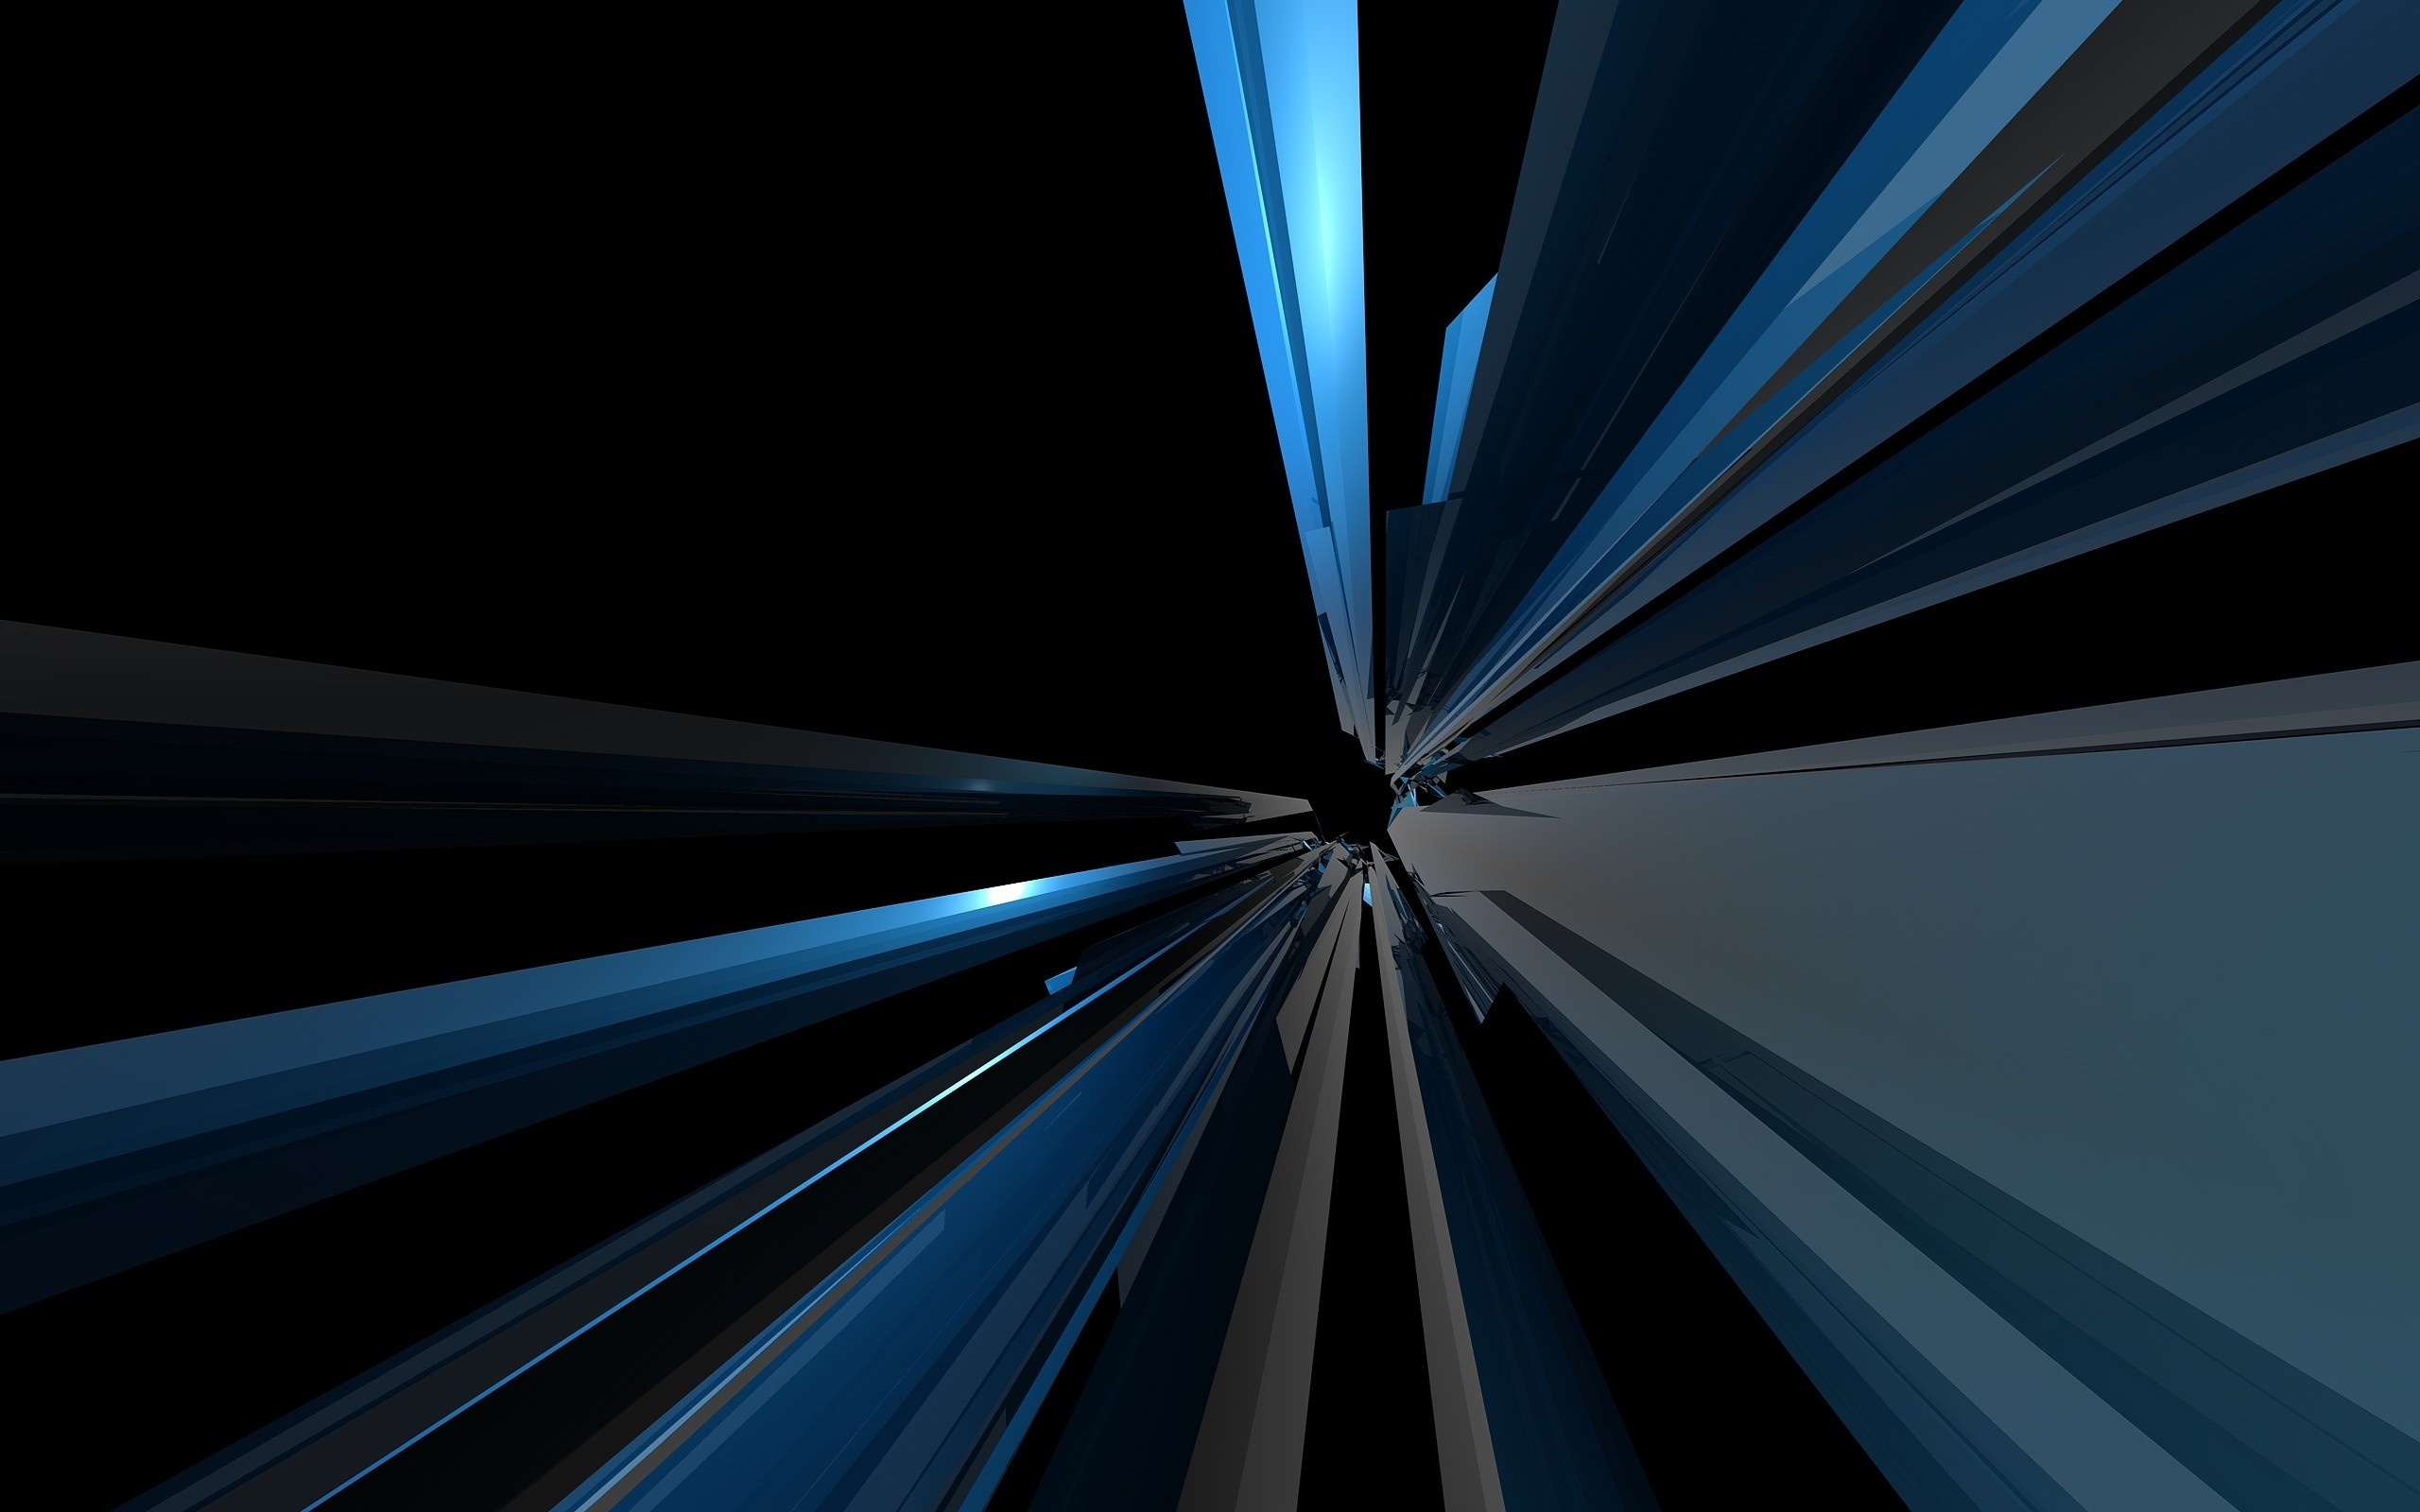 2560x1600 abstract blue lines desktop pc and mac wallpaper for Wallpaper home line